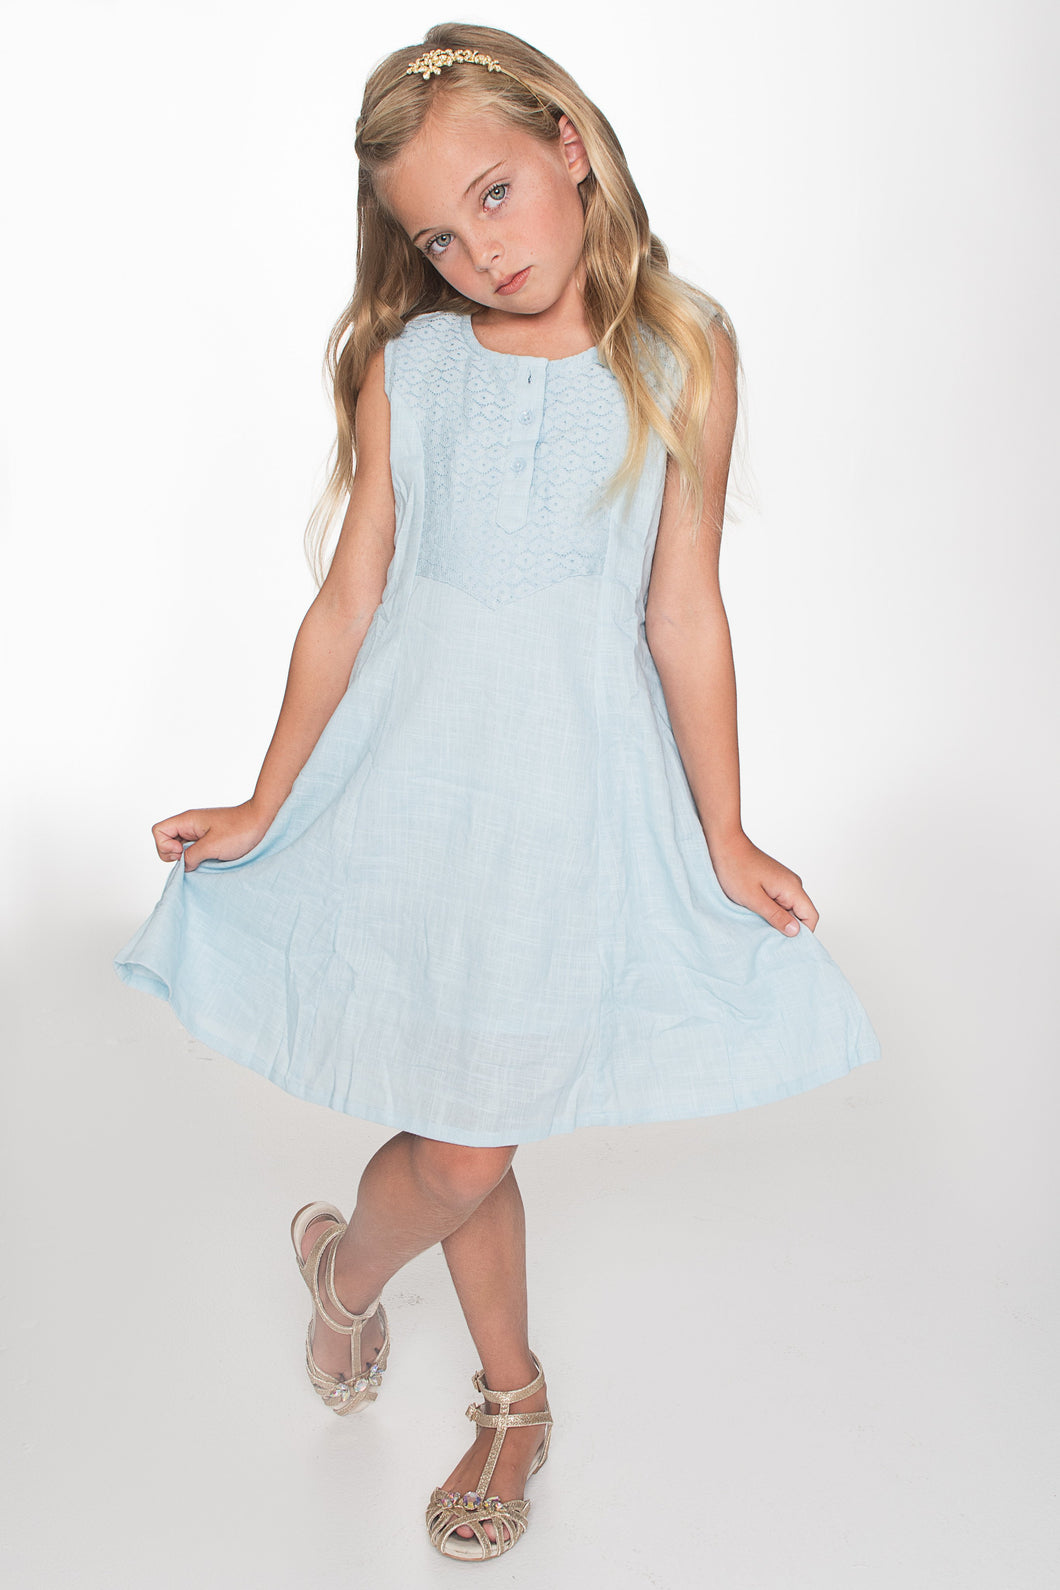 Blue Lace Detail Yoke Shift Dress - Kids Clothing, Dress - Girls Dress, Yo Baby Online - Yo Baby